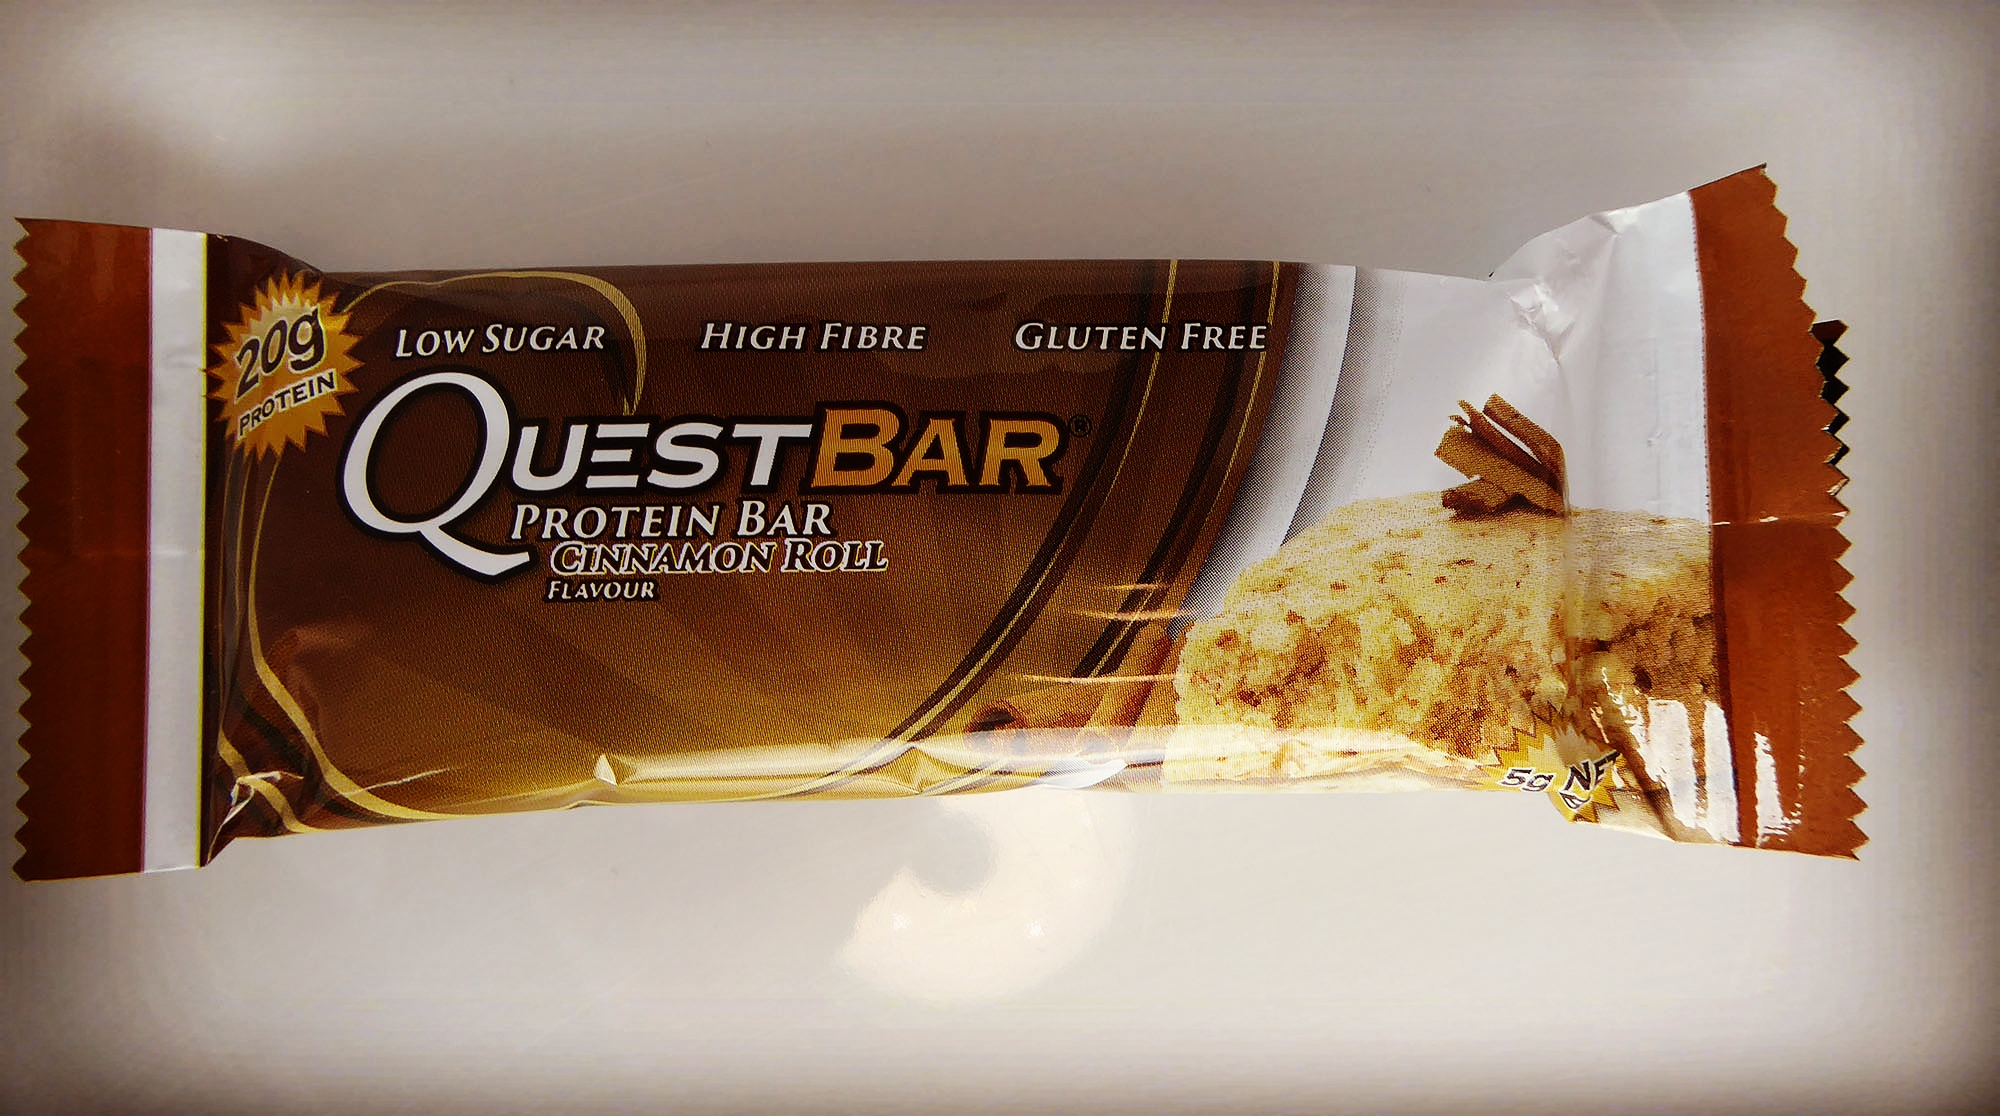 Questbar Proteinbar Protein Bar